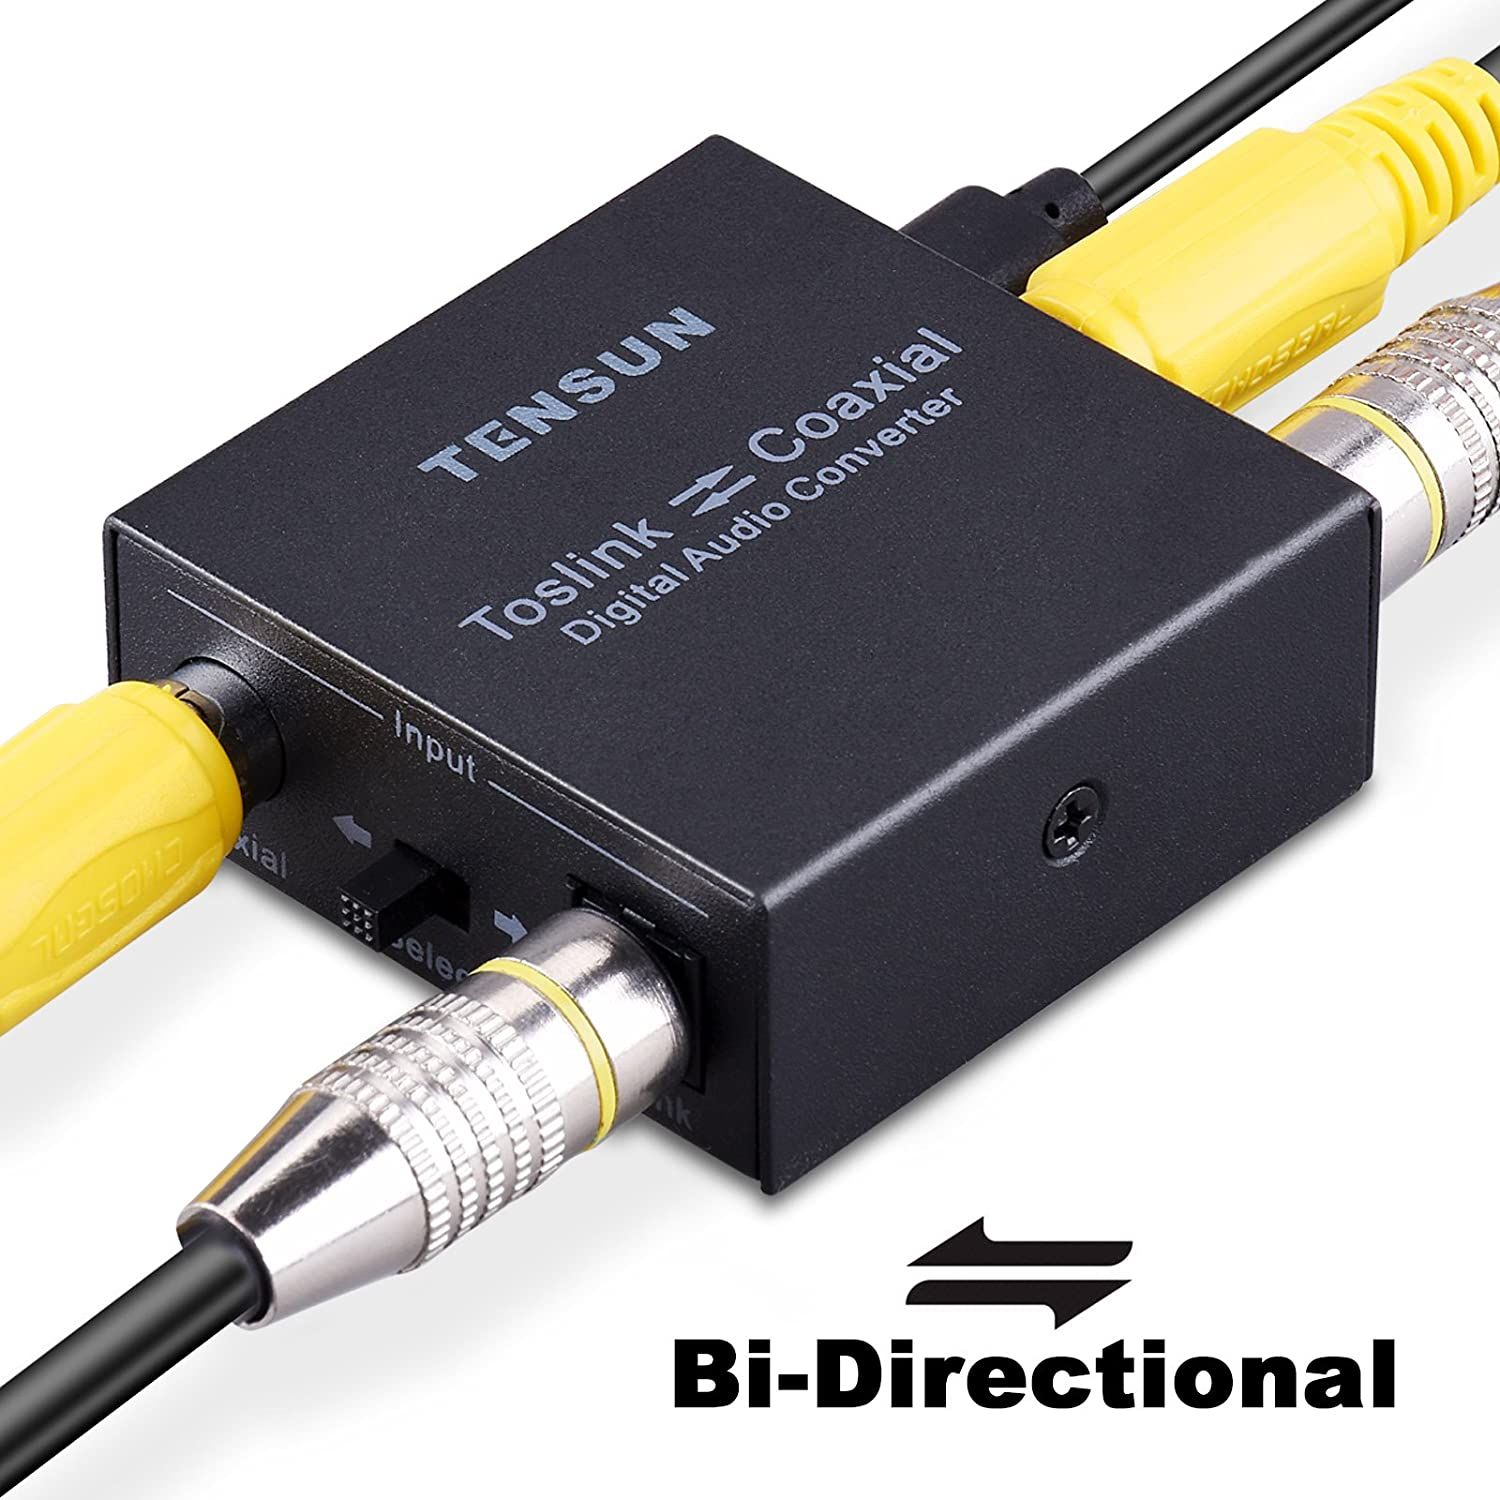 Tensun Optical to Coaxial Converter, Optical to Coax Digital Coax Coaxial to SPDIF Toslink Optical Bi-Directional Digital to Audio Converter Adapter Repeater TEN-HD007